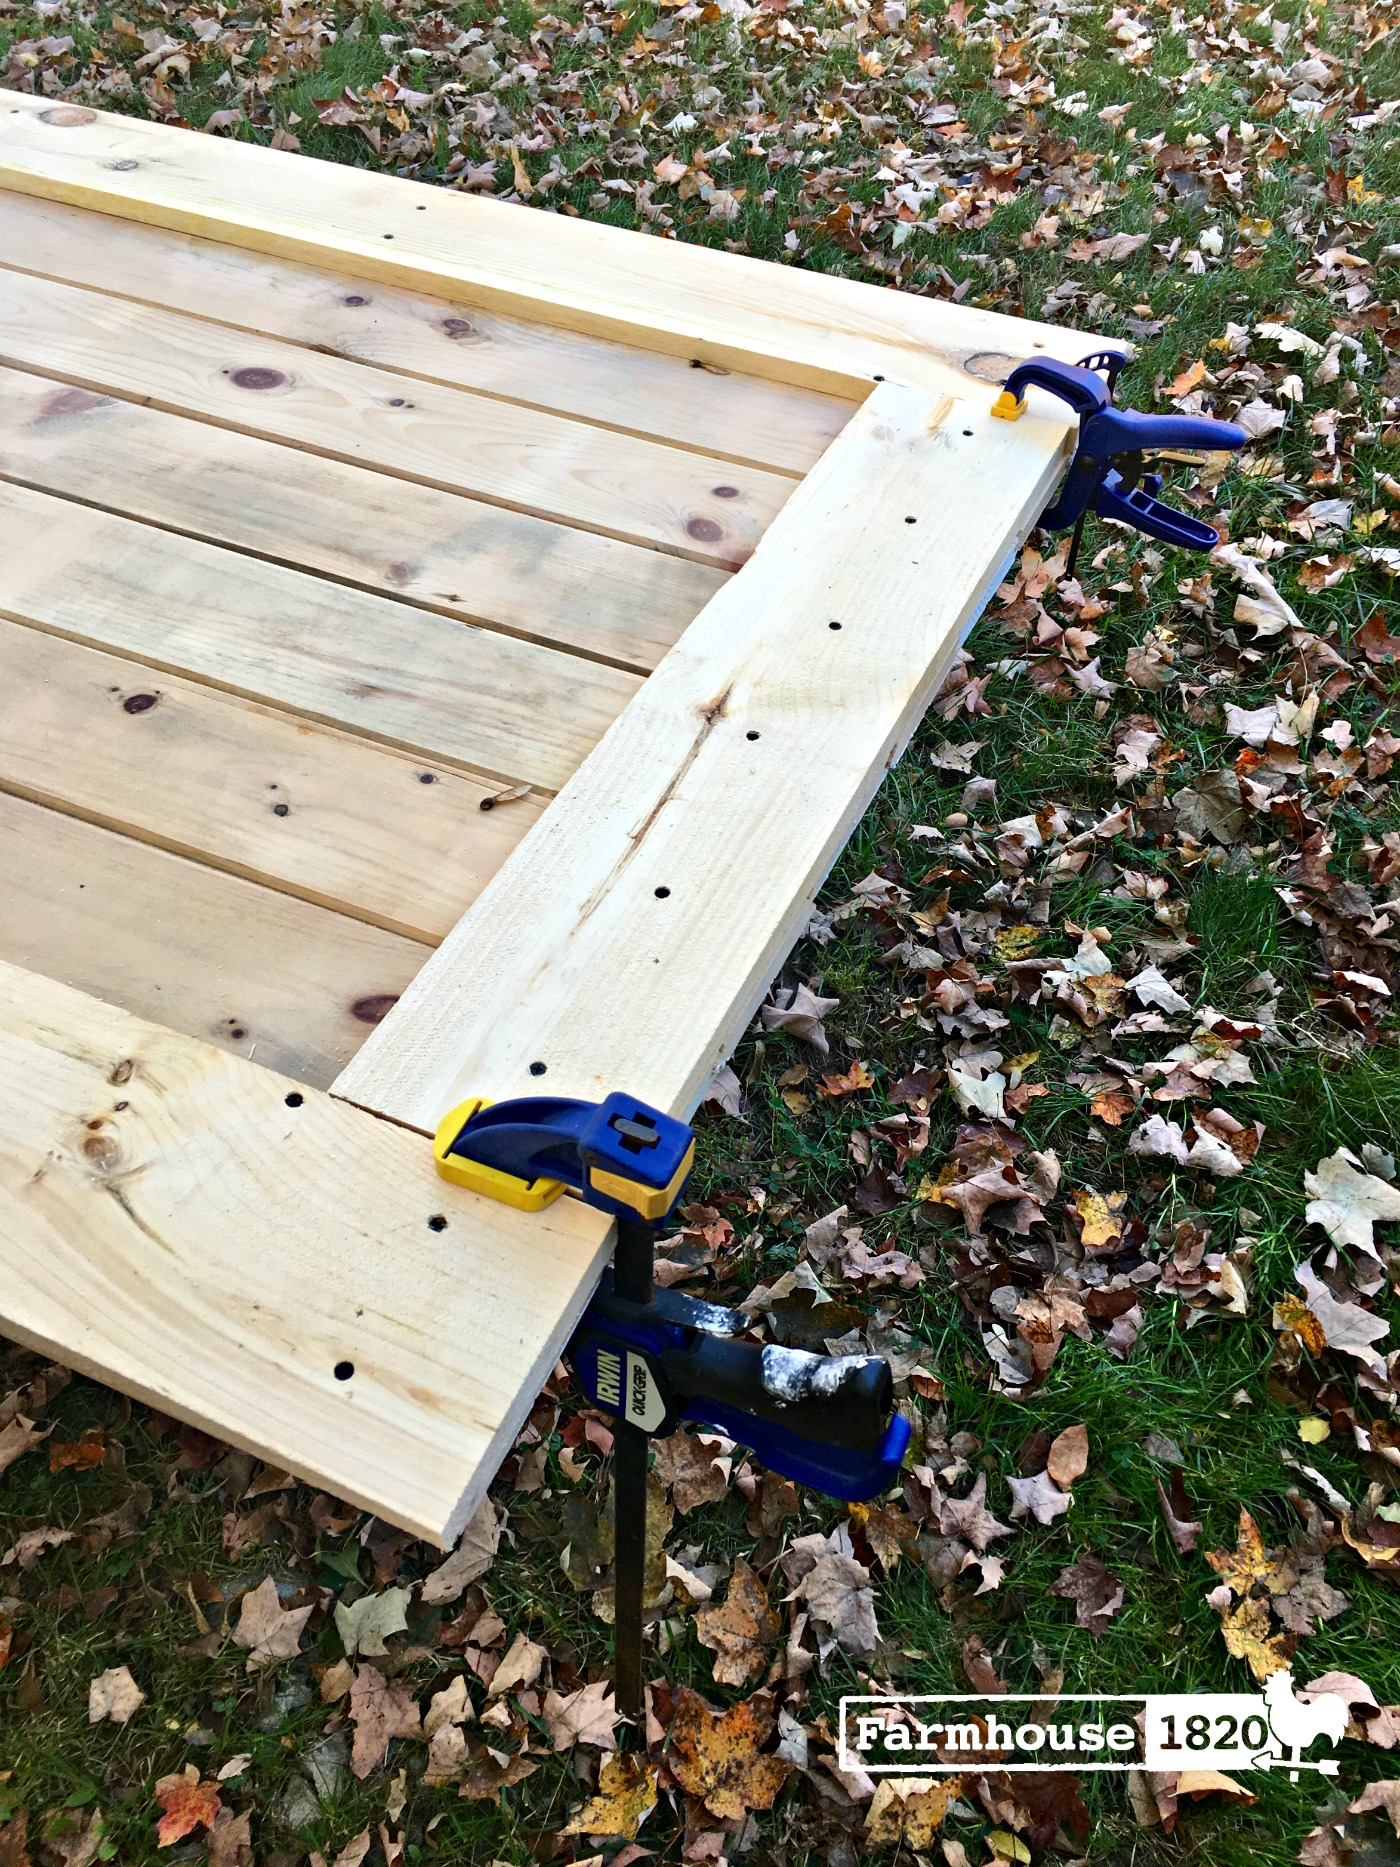 barn door - clamps keeps things together while it dries